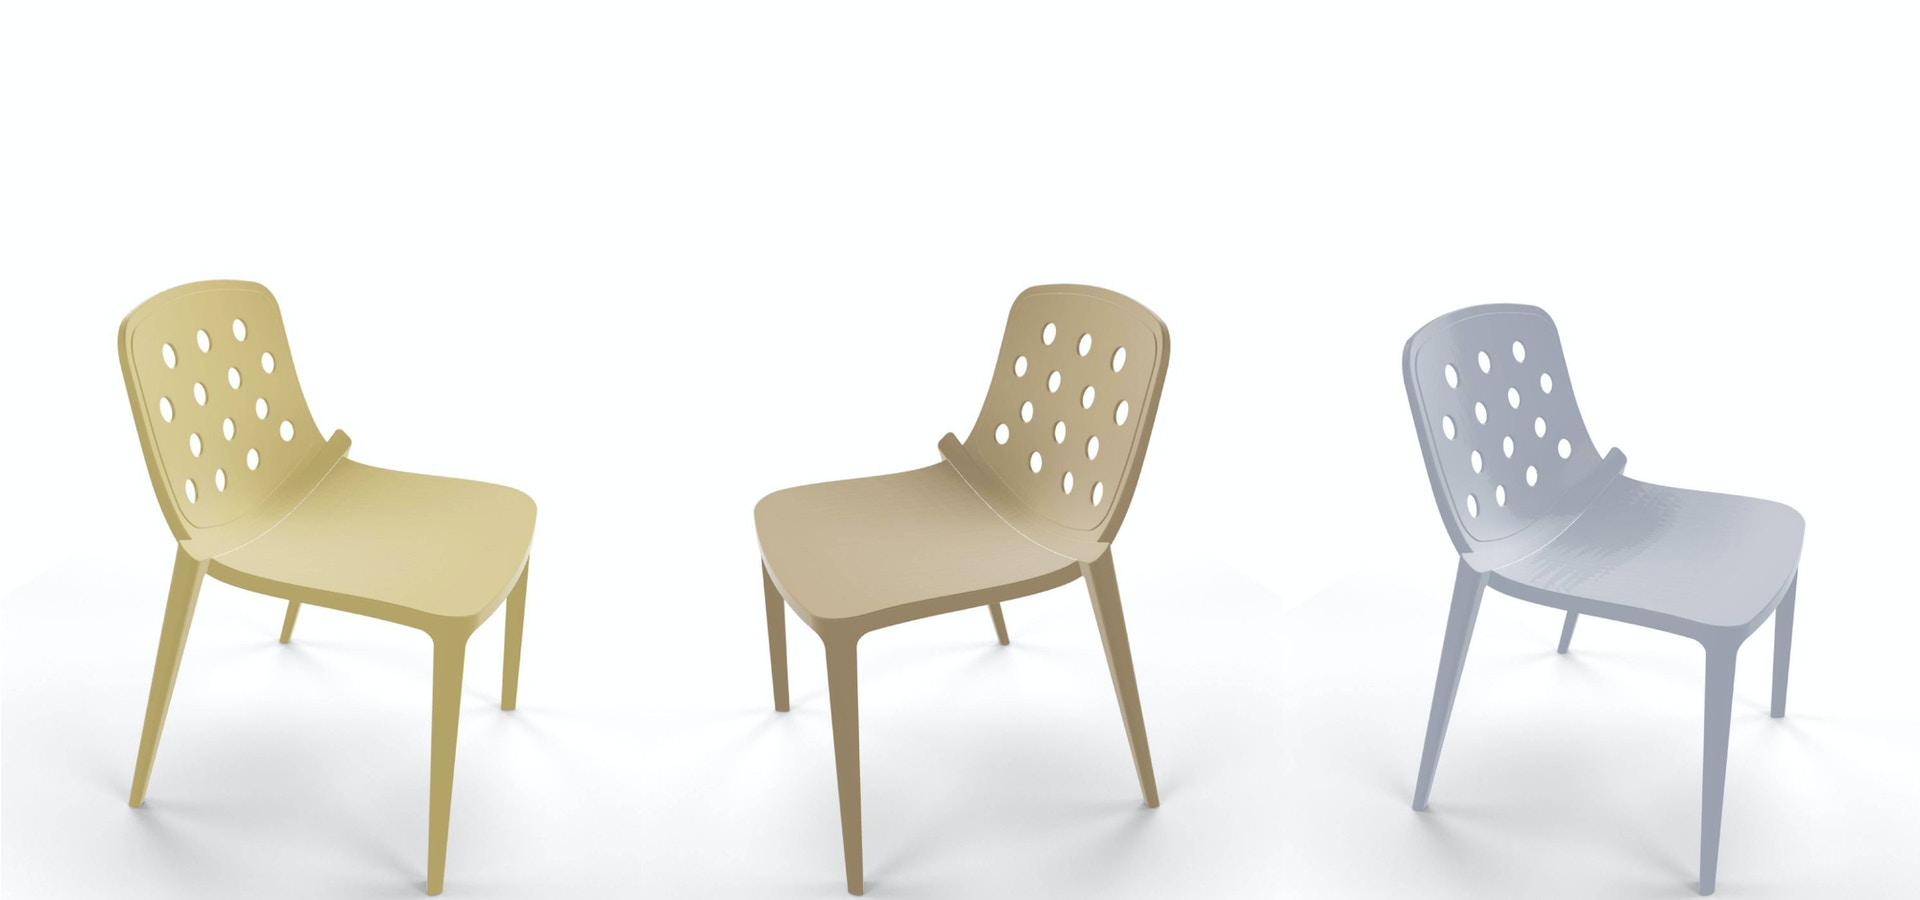 Chairs Stosa - Model Isidora 10088